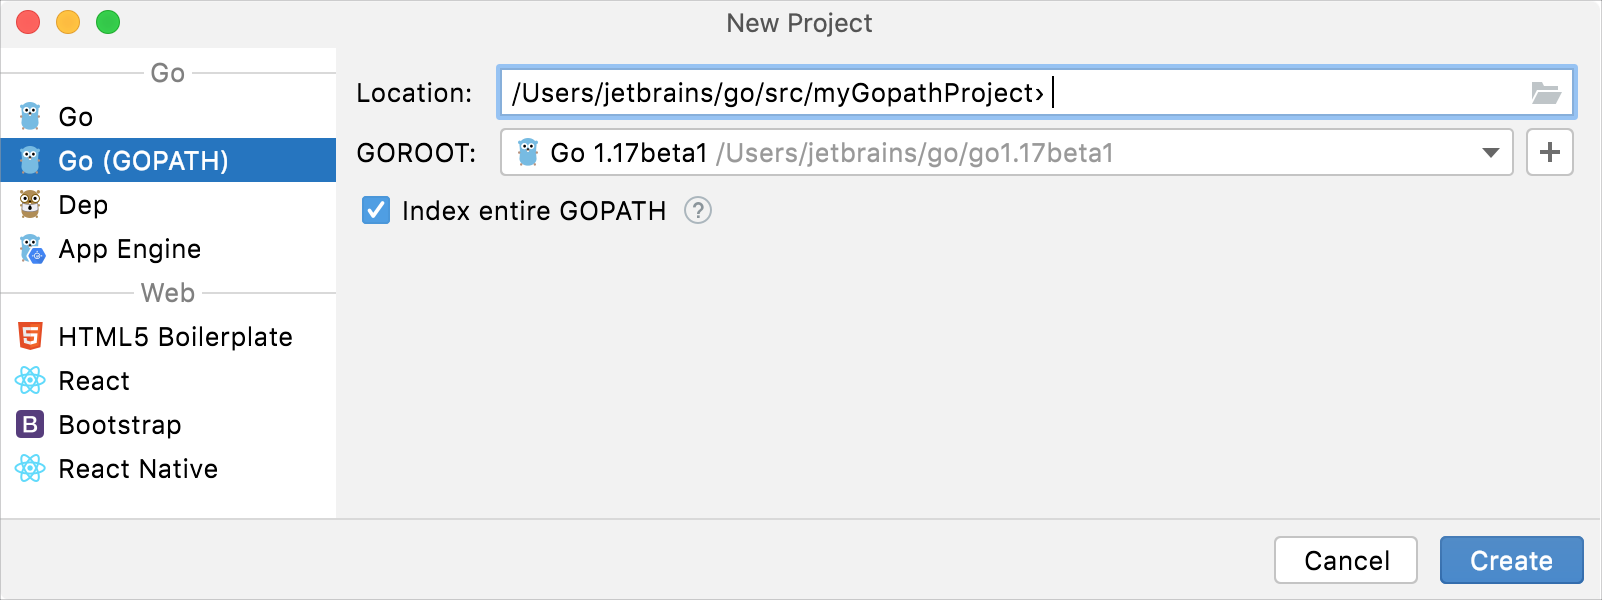 Create a project with Go (GOPATH) integration